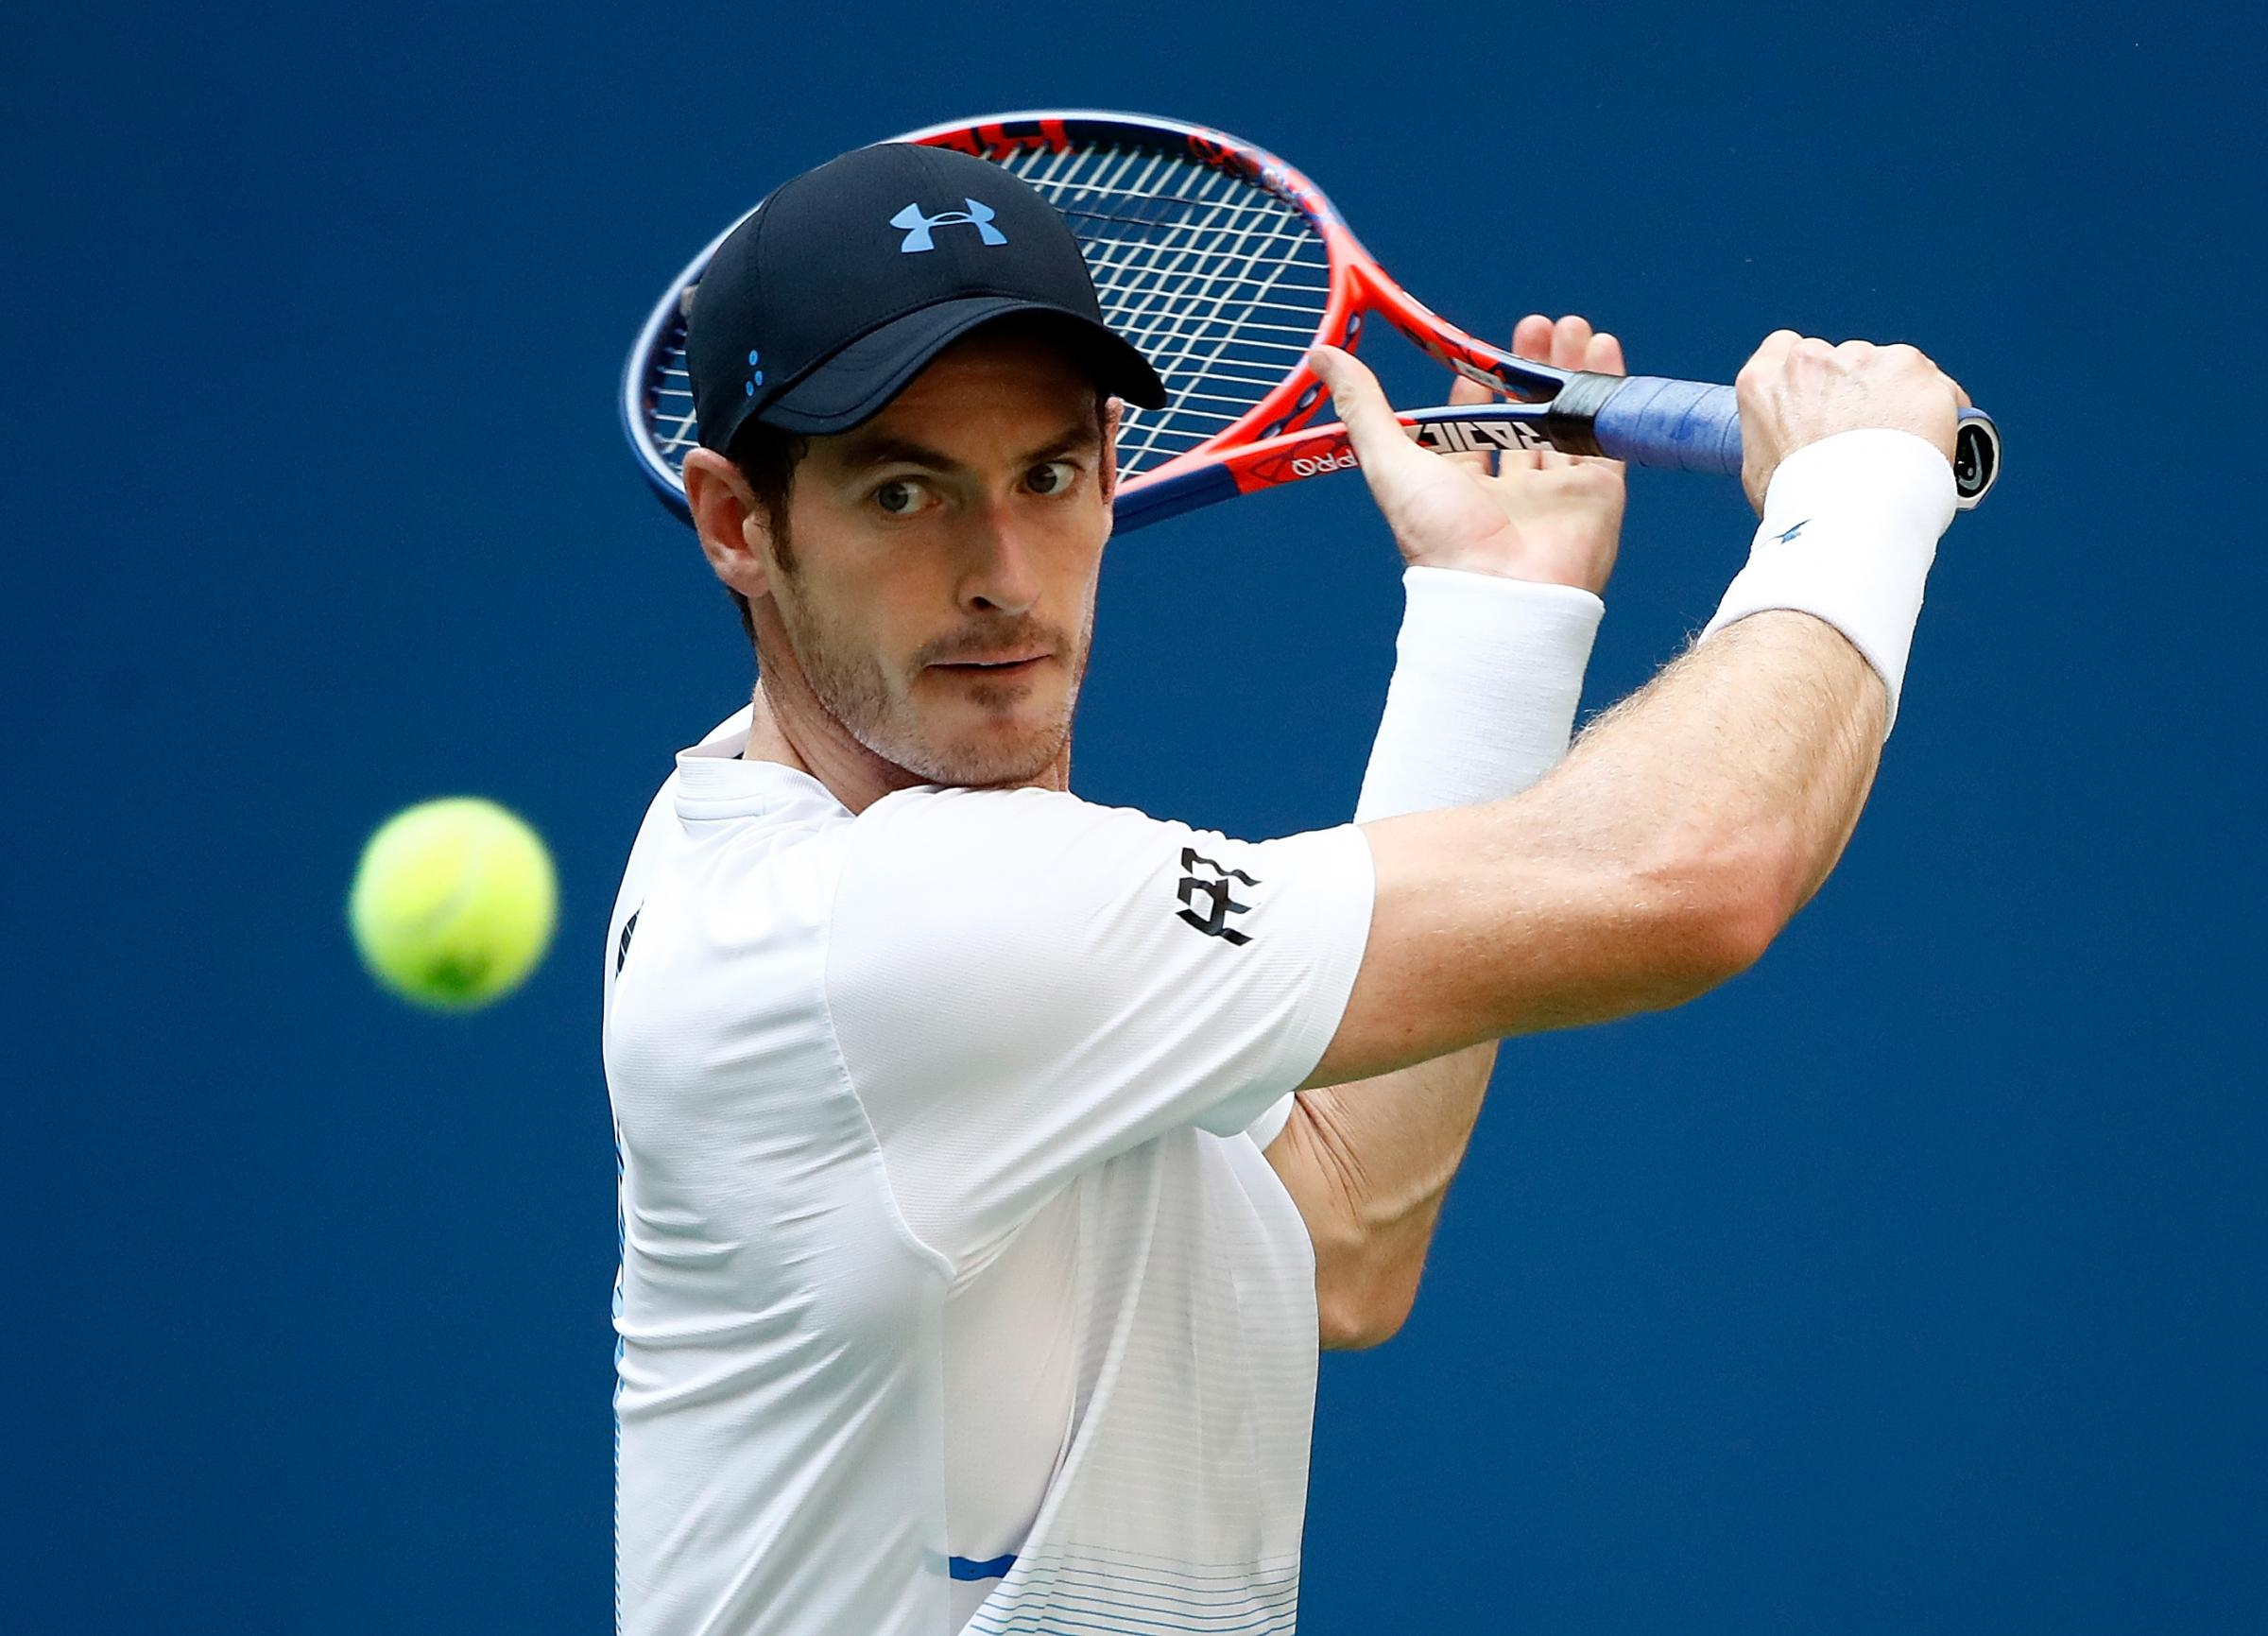 Andy Murray will play Zhizhen Zhang of China at the Shenzhen Open